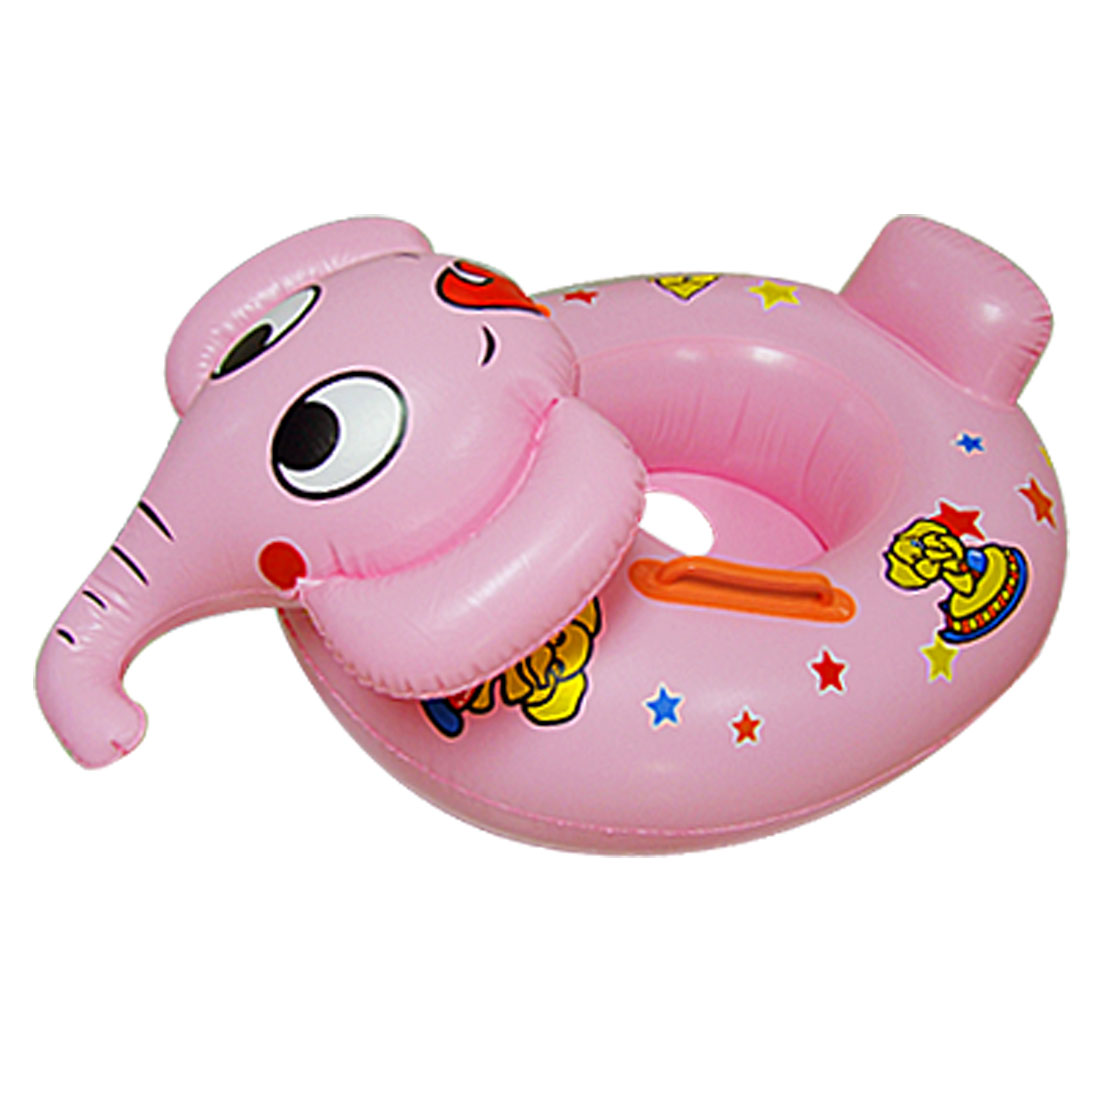 Baby Toddler Star Printed Elephant Shaped Swimming Pool Ring Pink